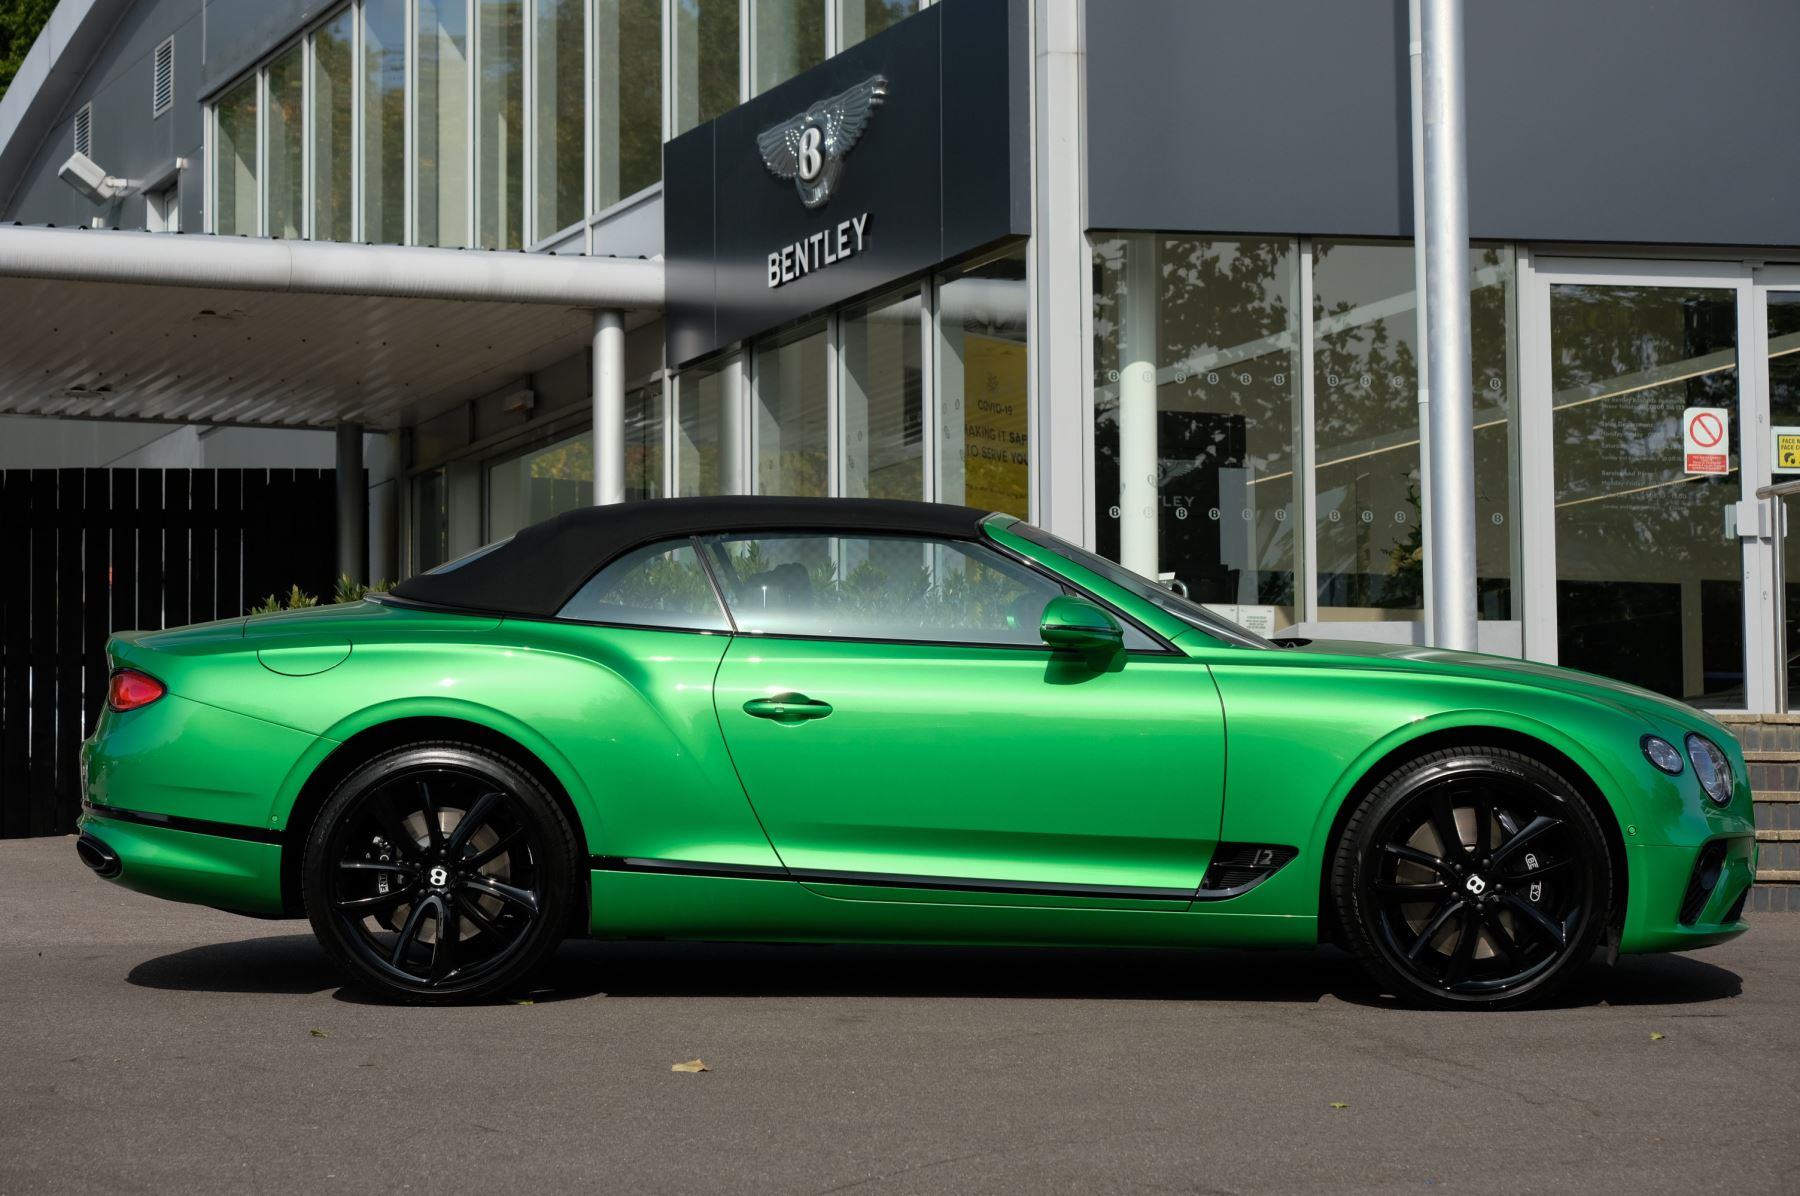 Bentley Continental GTC 6.0 W12 2dr Mulliner Driving Specification image 3